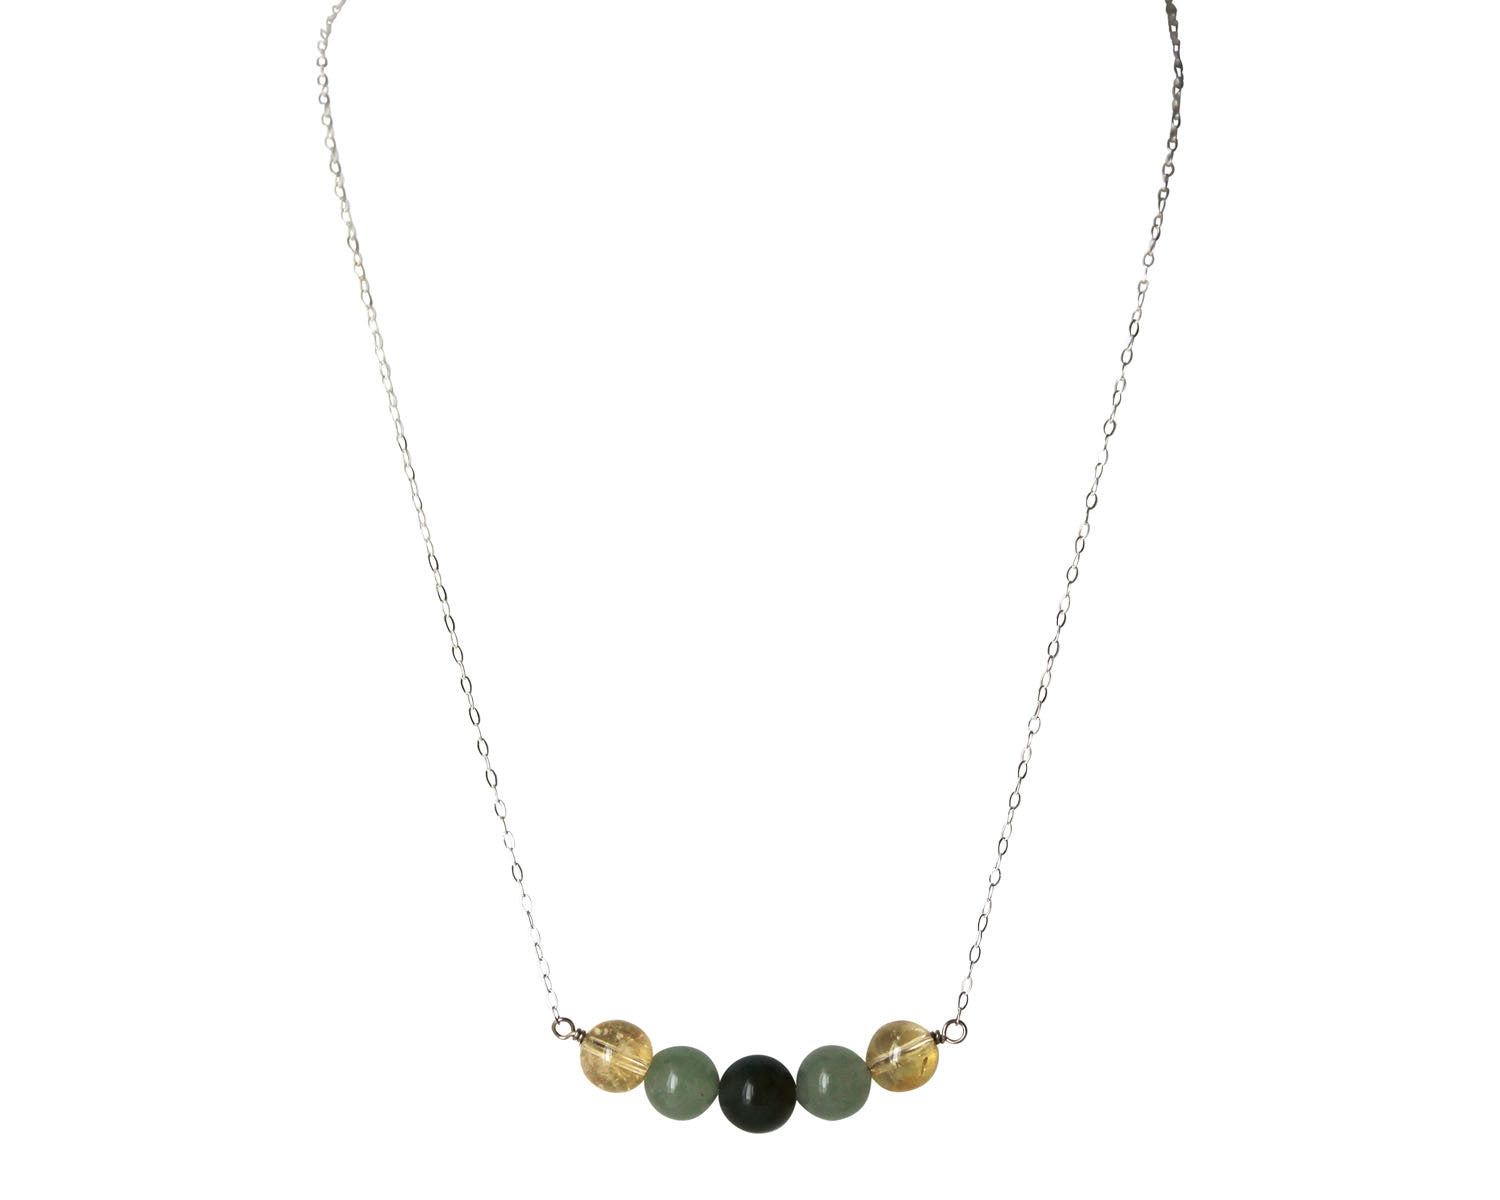 Focus Abundance Necklace